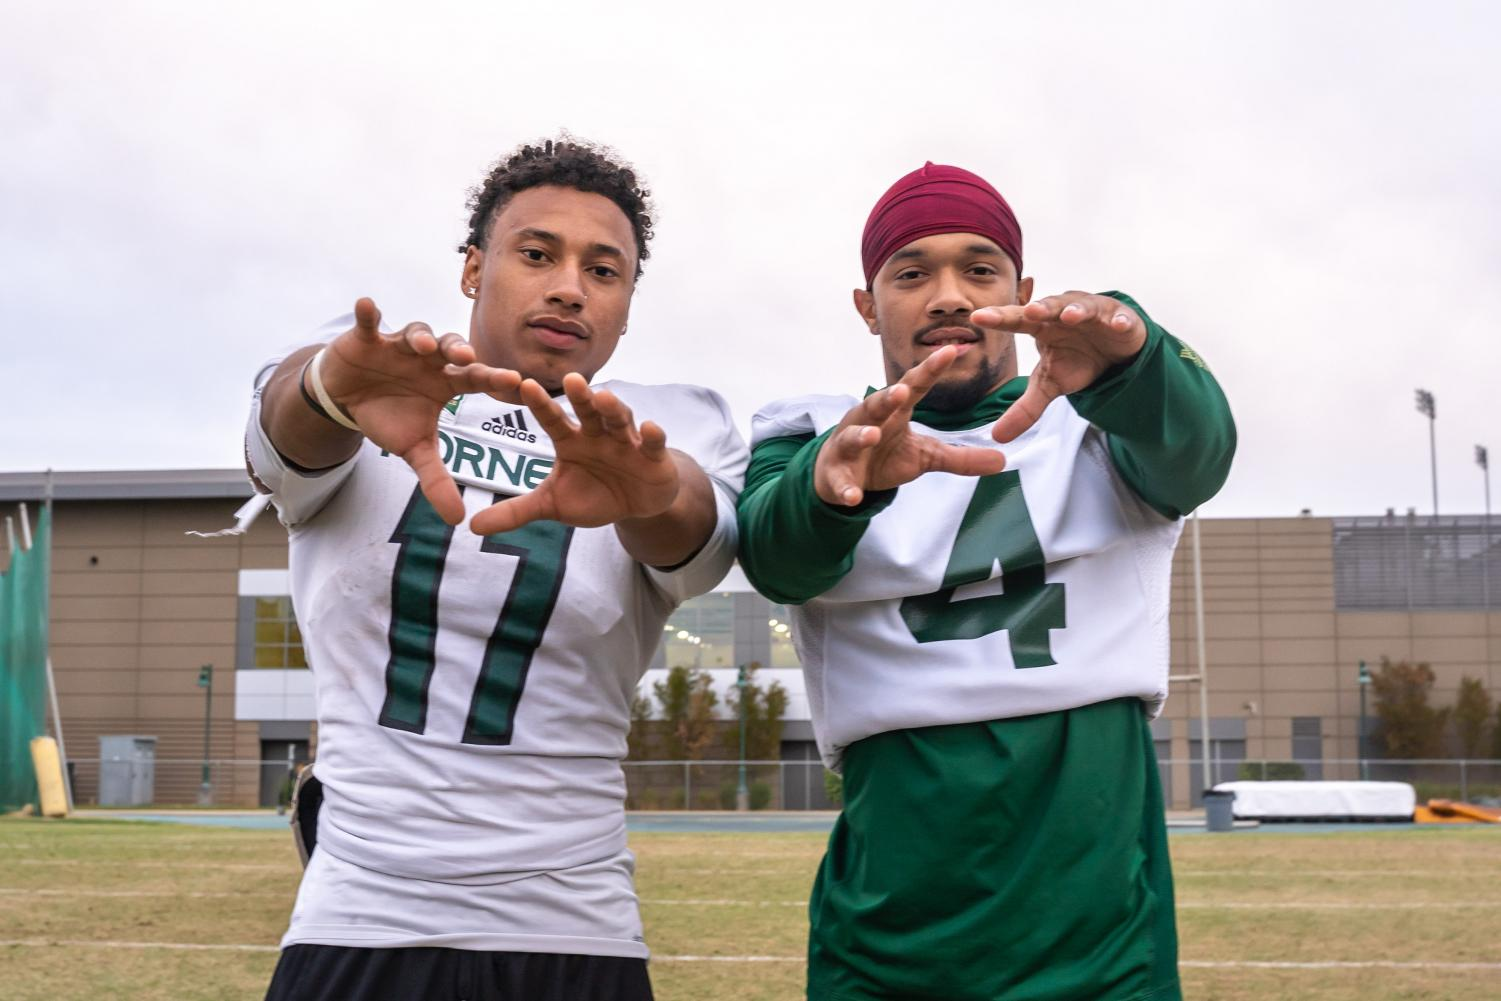 Sacramento State wide receivers sophomore Dewey Cotton and junior Isaiah Gable pose for a photo Wednesday, Oct. 16 at the practice field. Gable and Cotton both come in at 5-feet-4-inches tall on the team roster, eight inches shorter than the average height for college receivers.